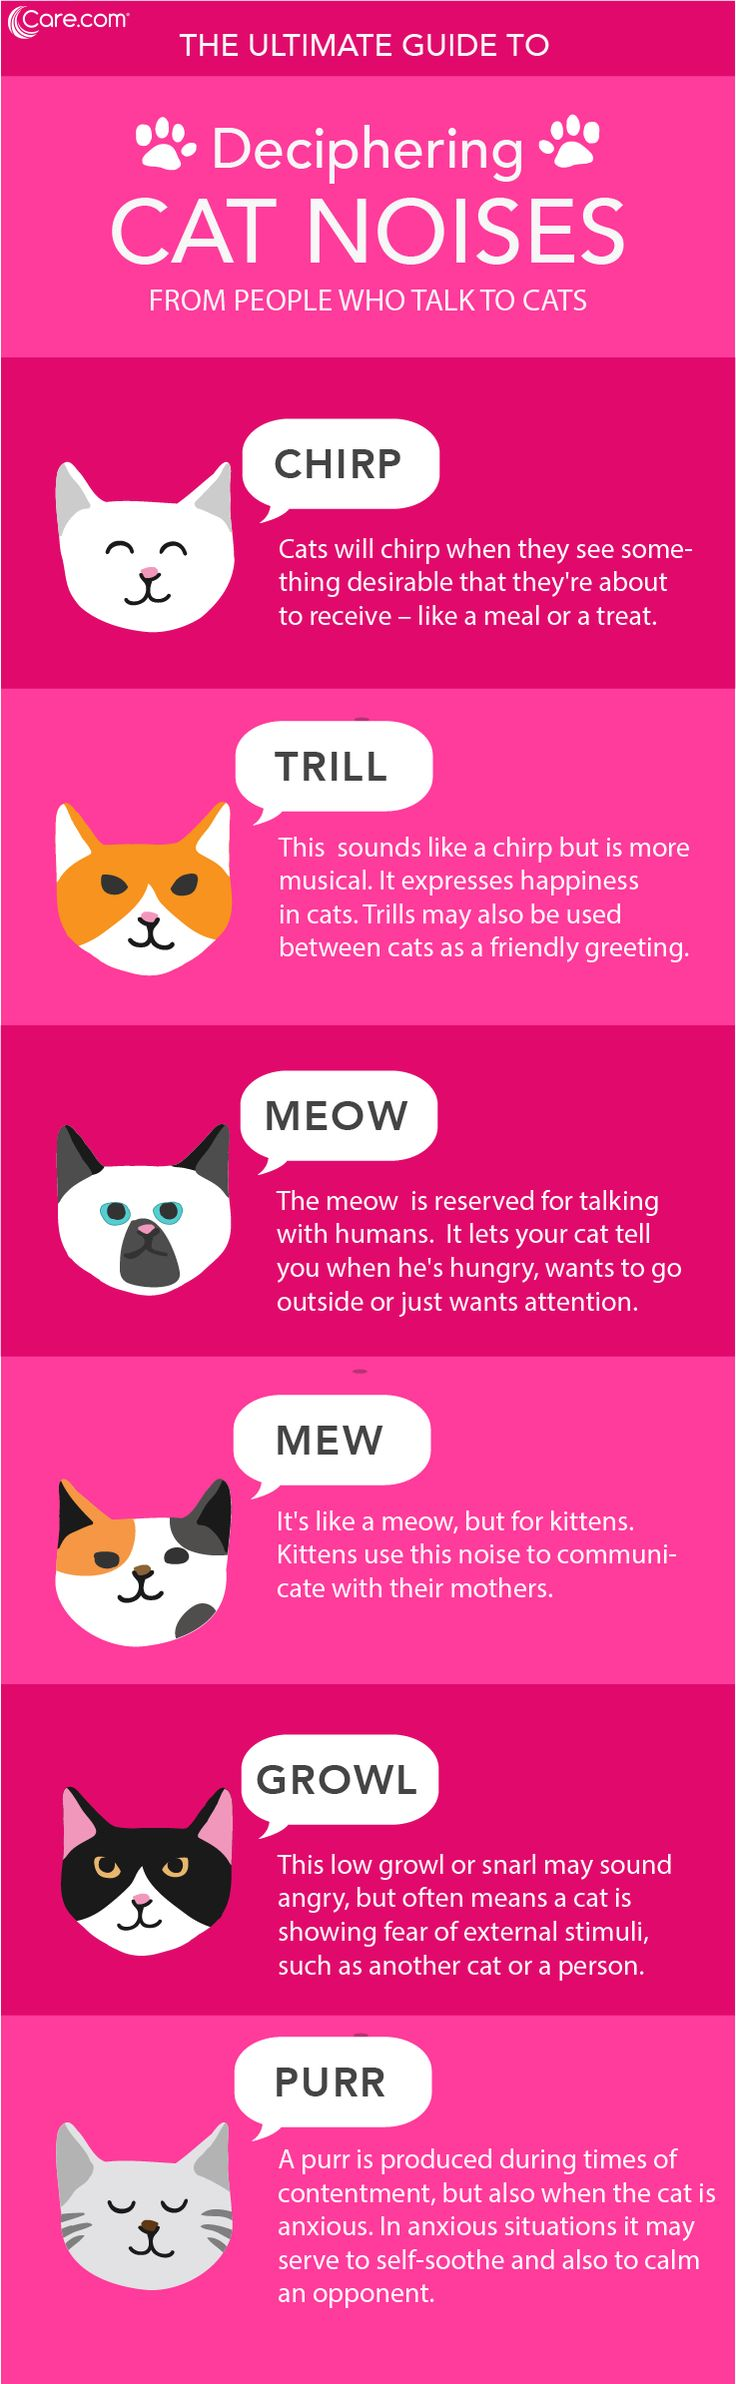 Those cat noises aren't just random sounds. They're vocalizations that mean something to your cat and you, too!